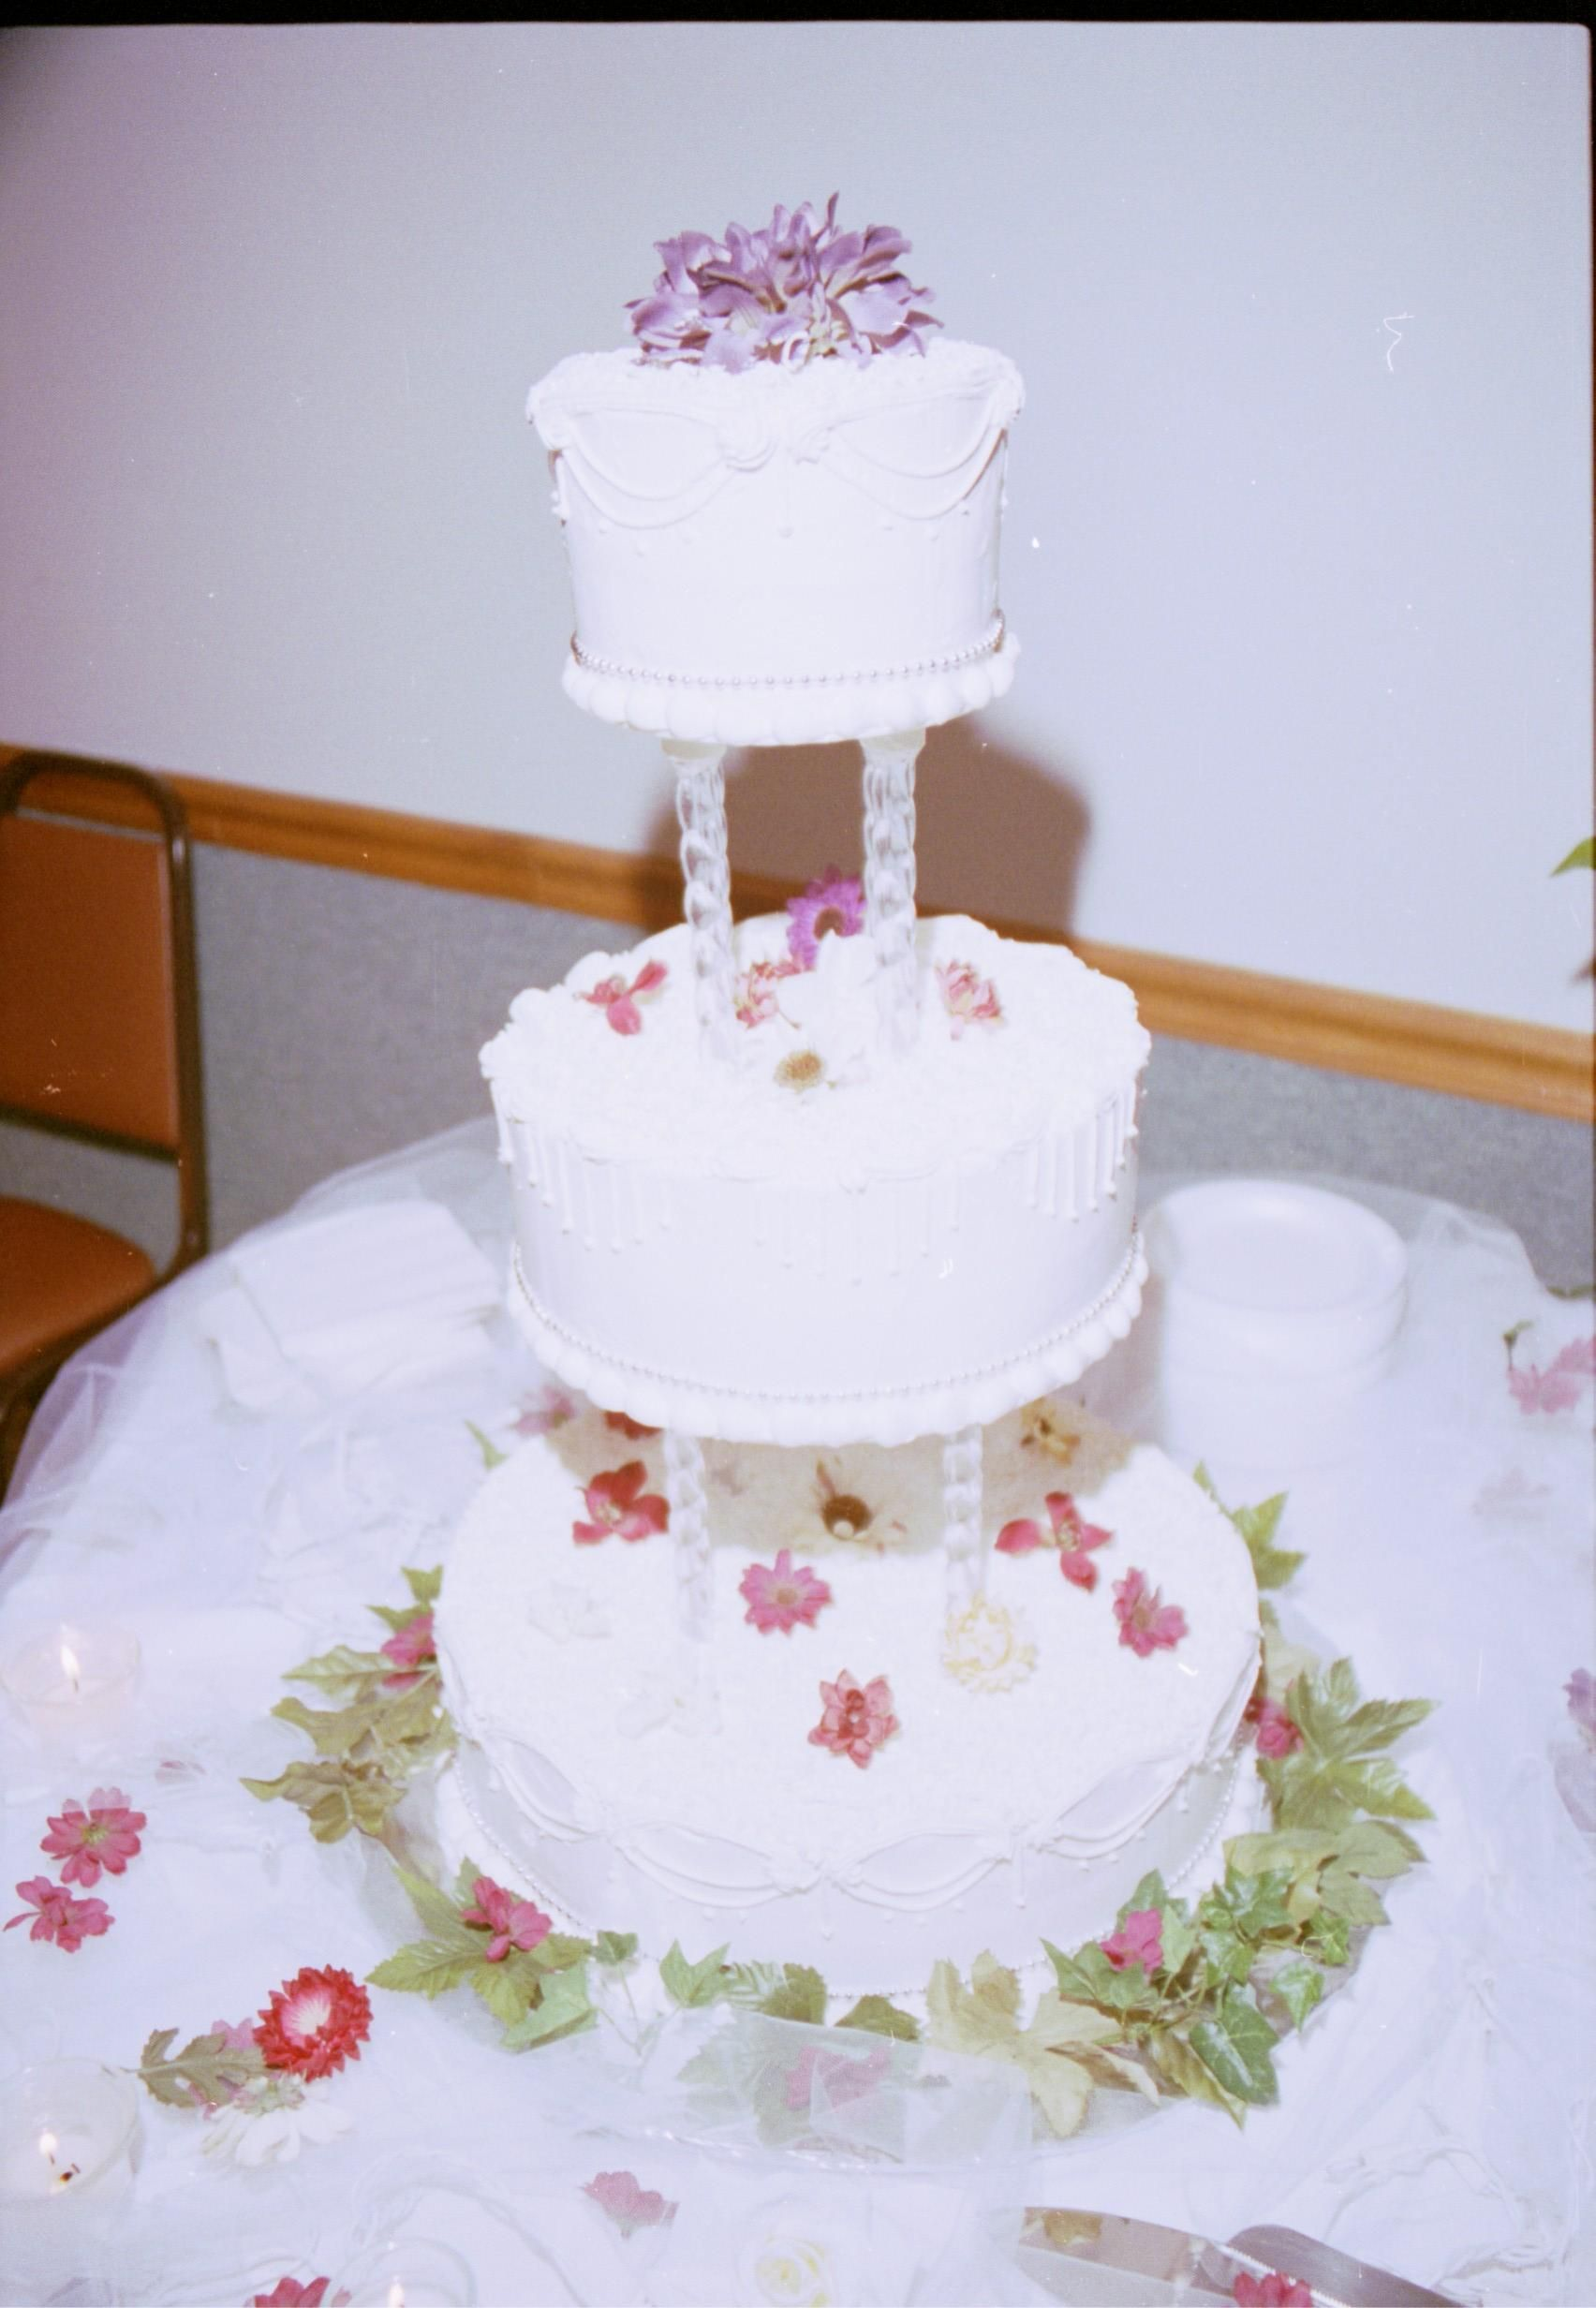 Cake Pictures Big : File:Wedding big cake.jpg